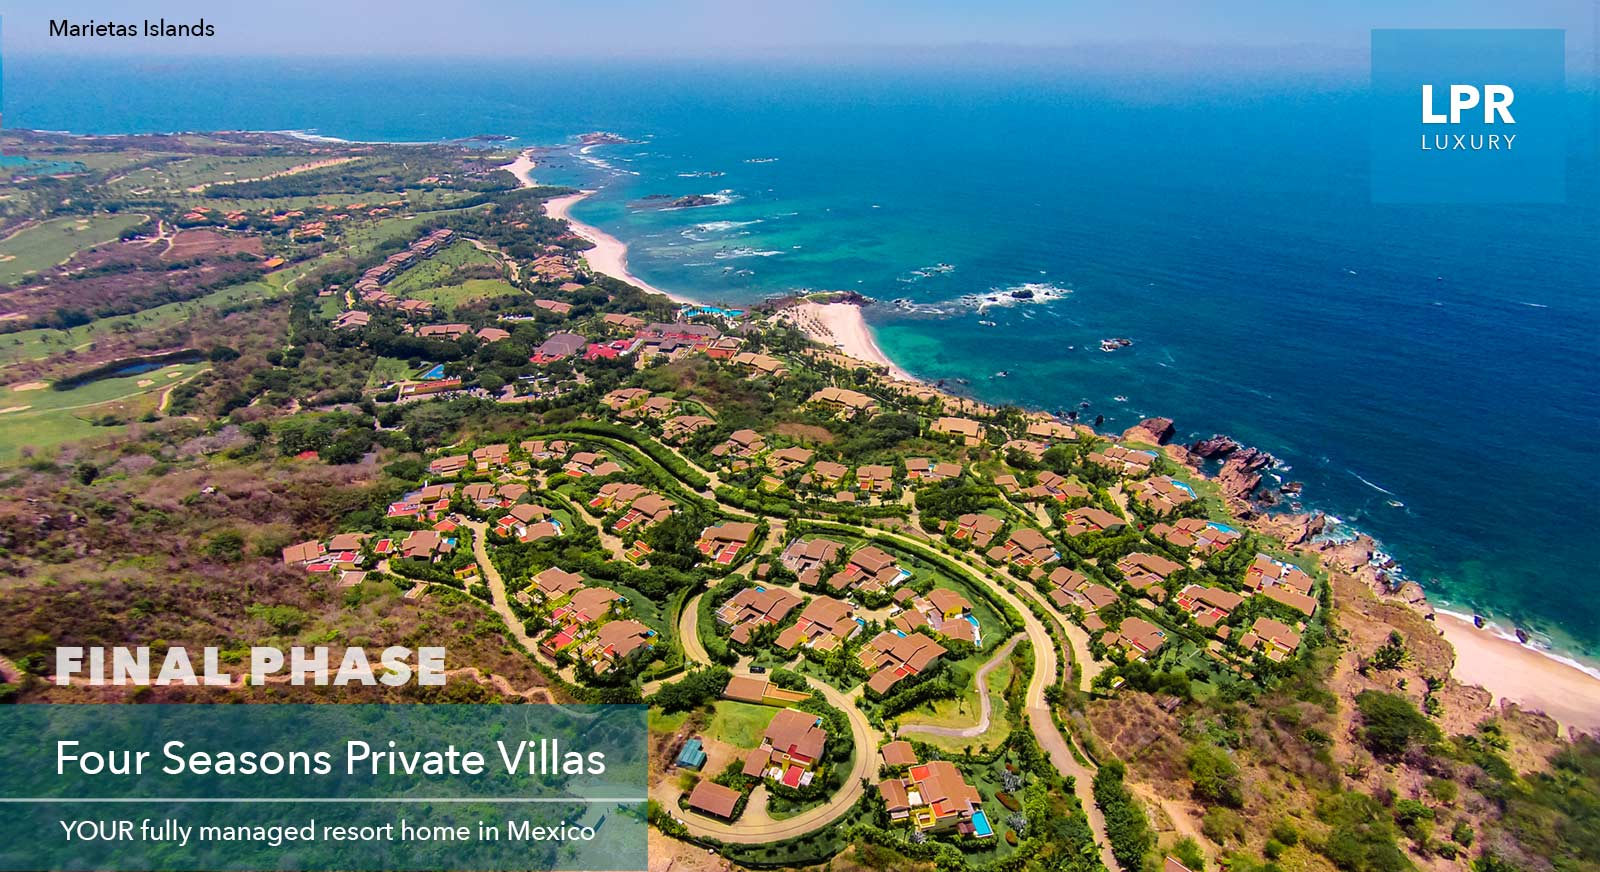 The Four Seasons Private Villas final phase